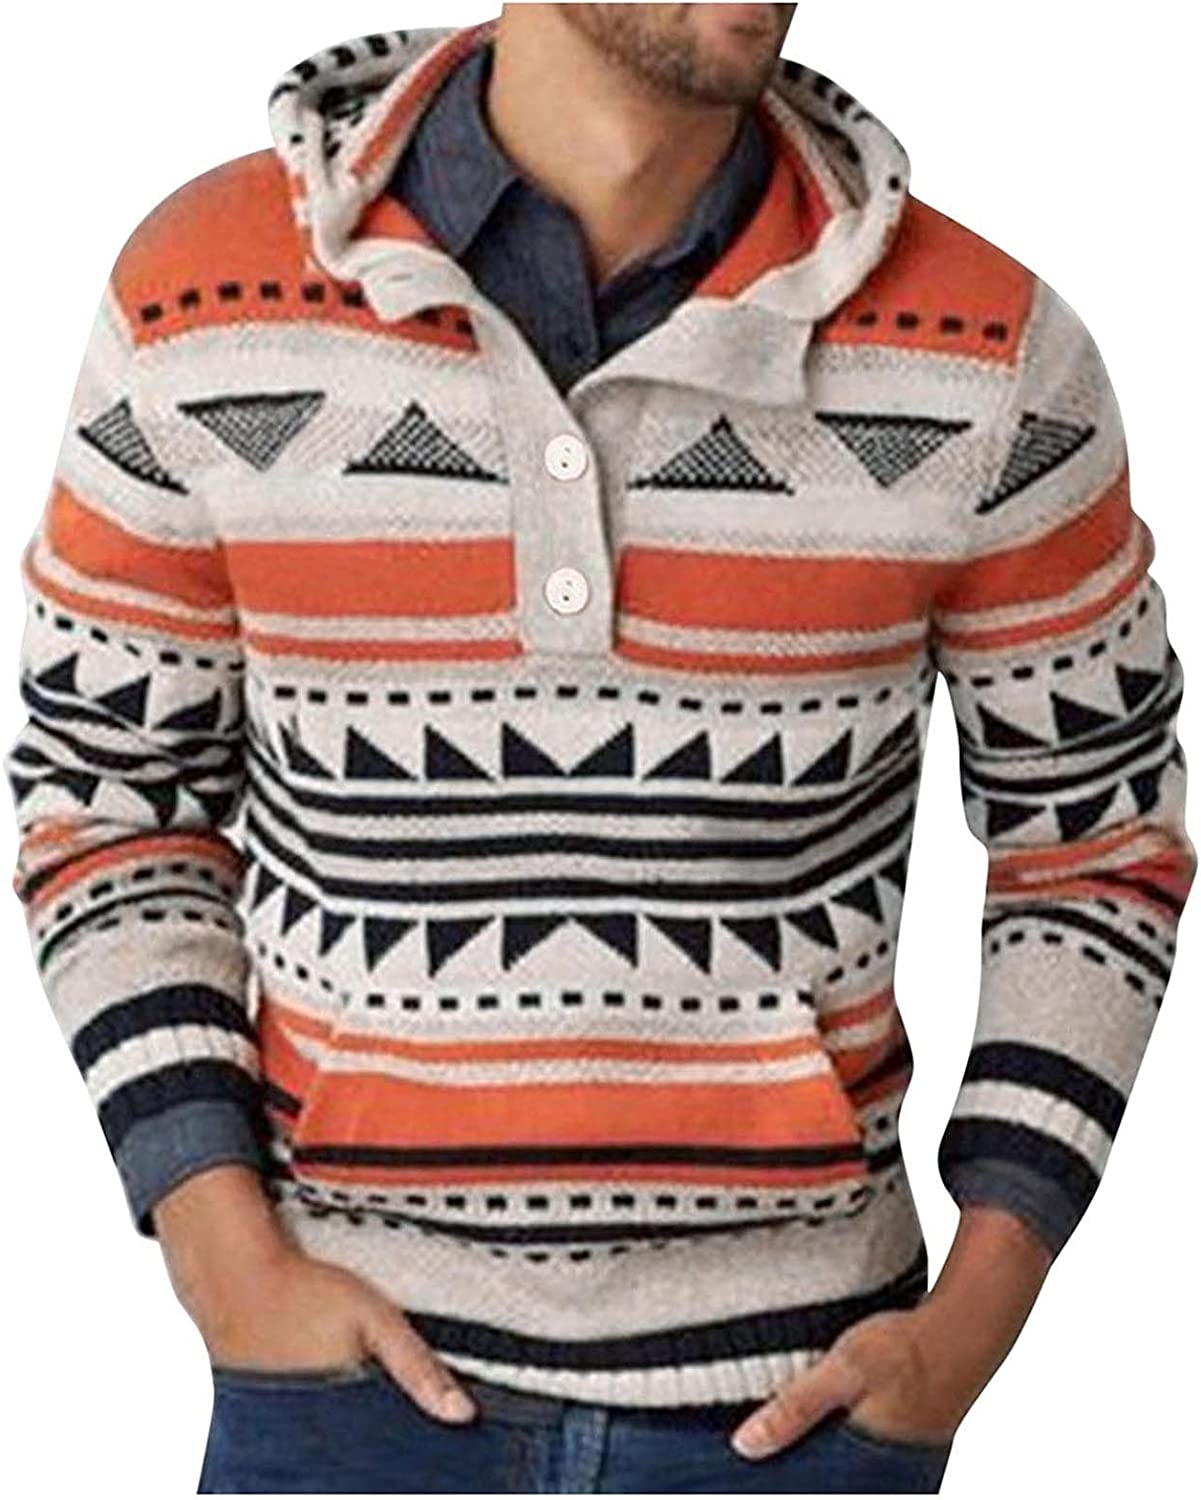 Huangse Men's Long Sleeve Knit Sweater Vintage Striped Button Down Polo Shirt Novelty Polo Collar Pullover Hoodie with Pocket